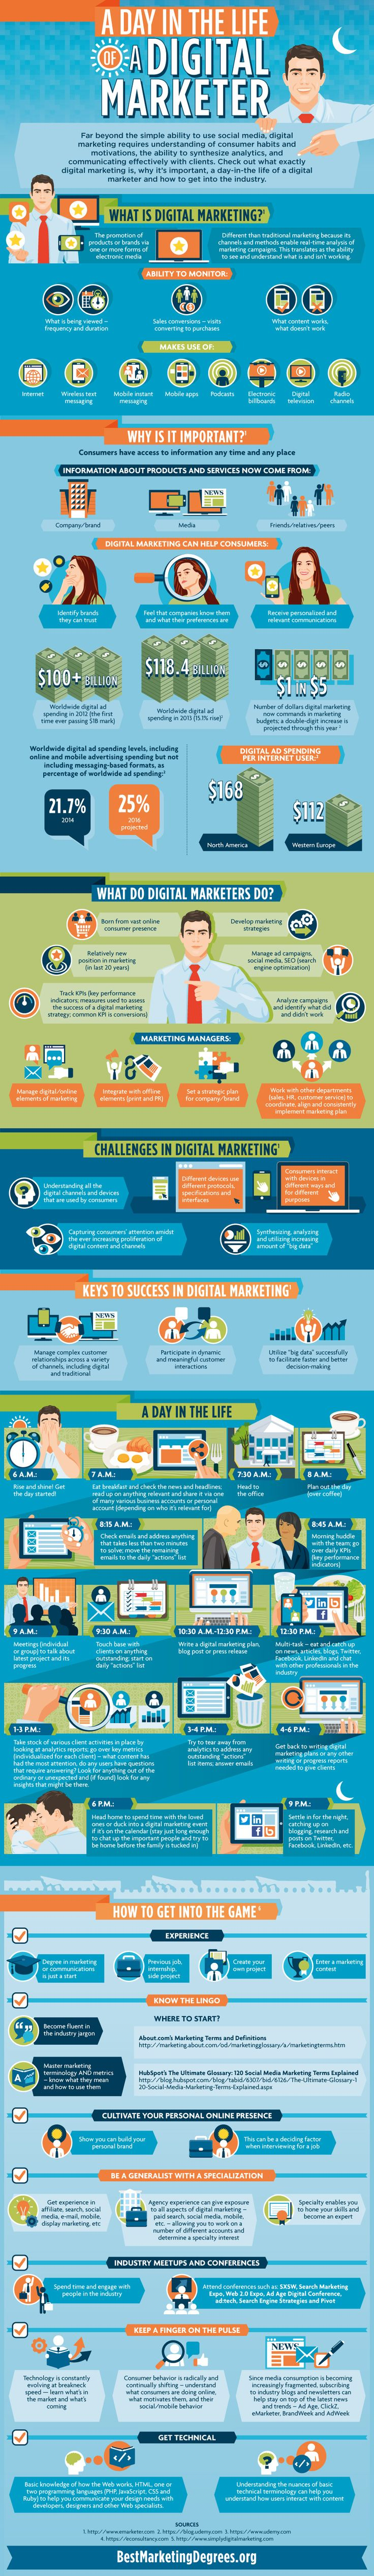 Friday Infographic: A Day in the Life of a Digital Marketer #Infographic